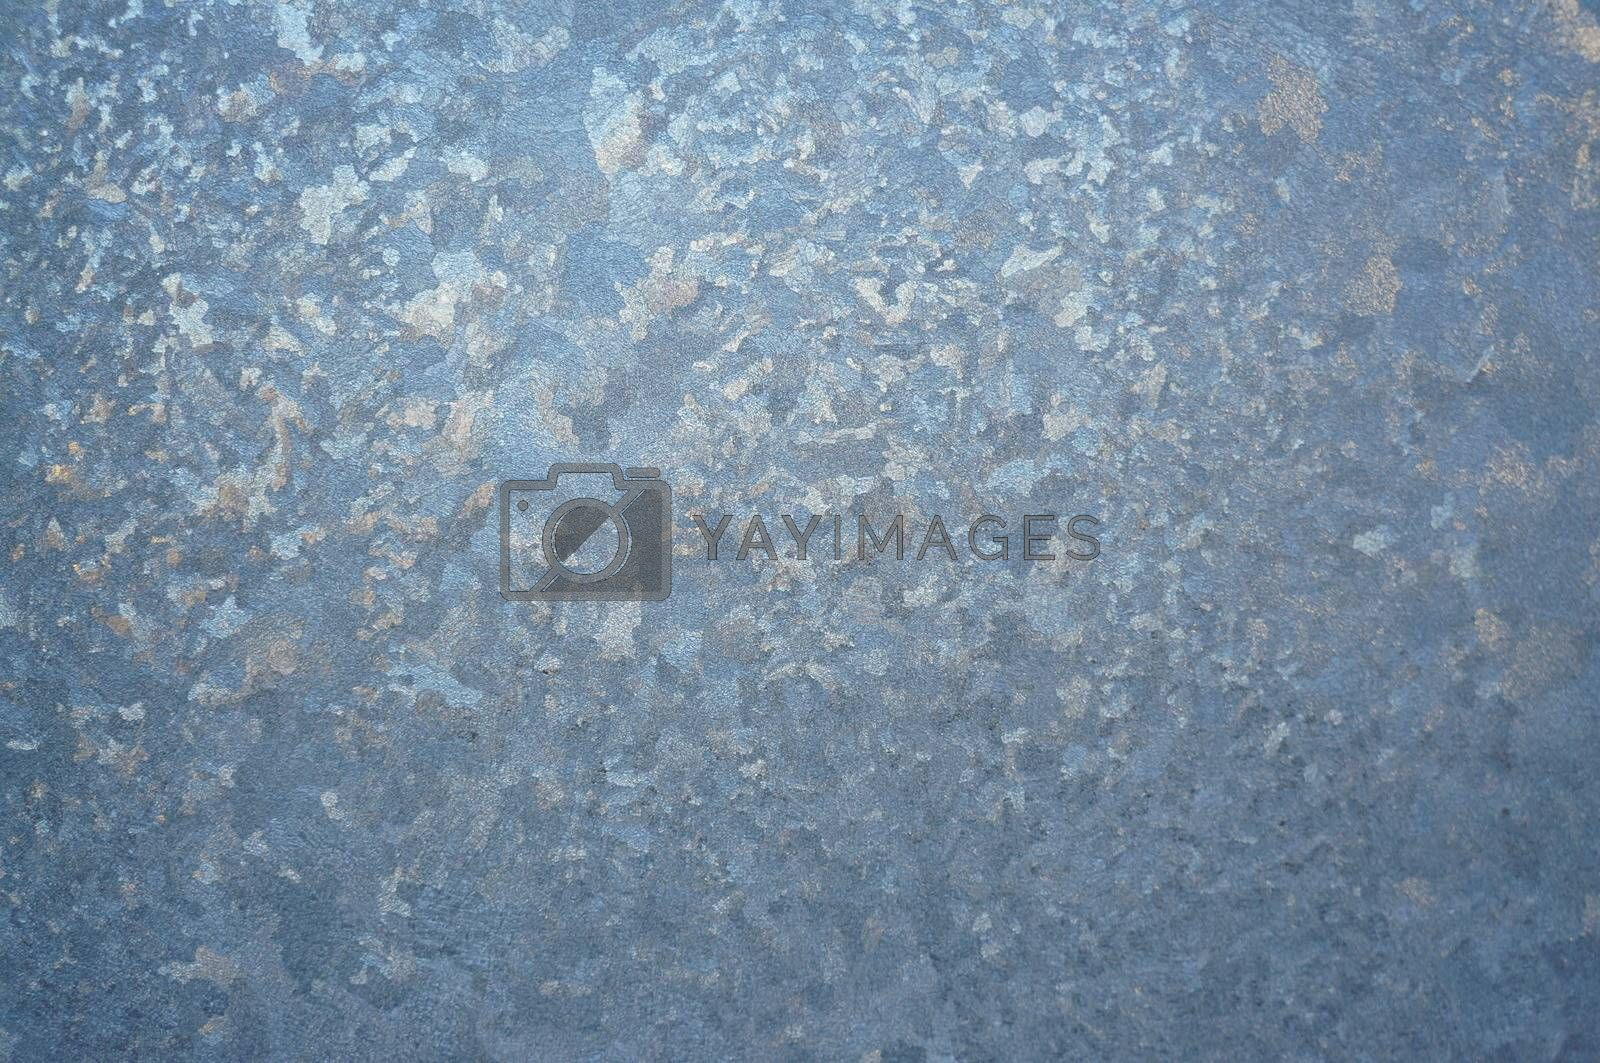 Abstract pattern on a window glass made by frost by Chiffanna